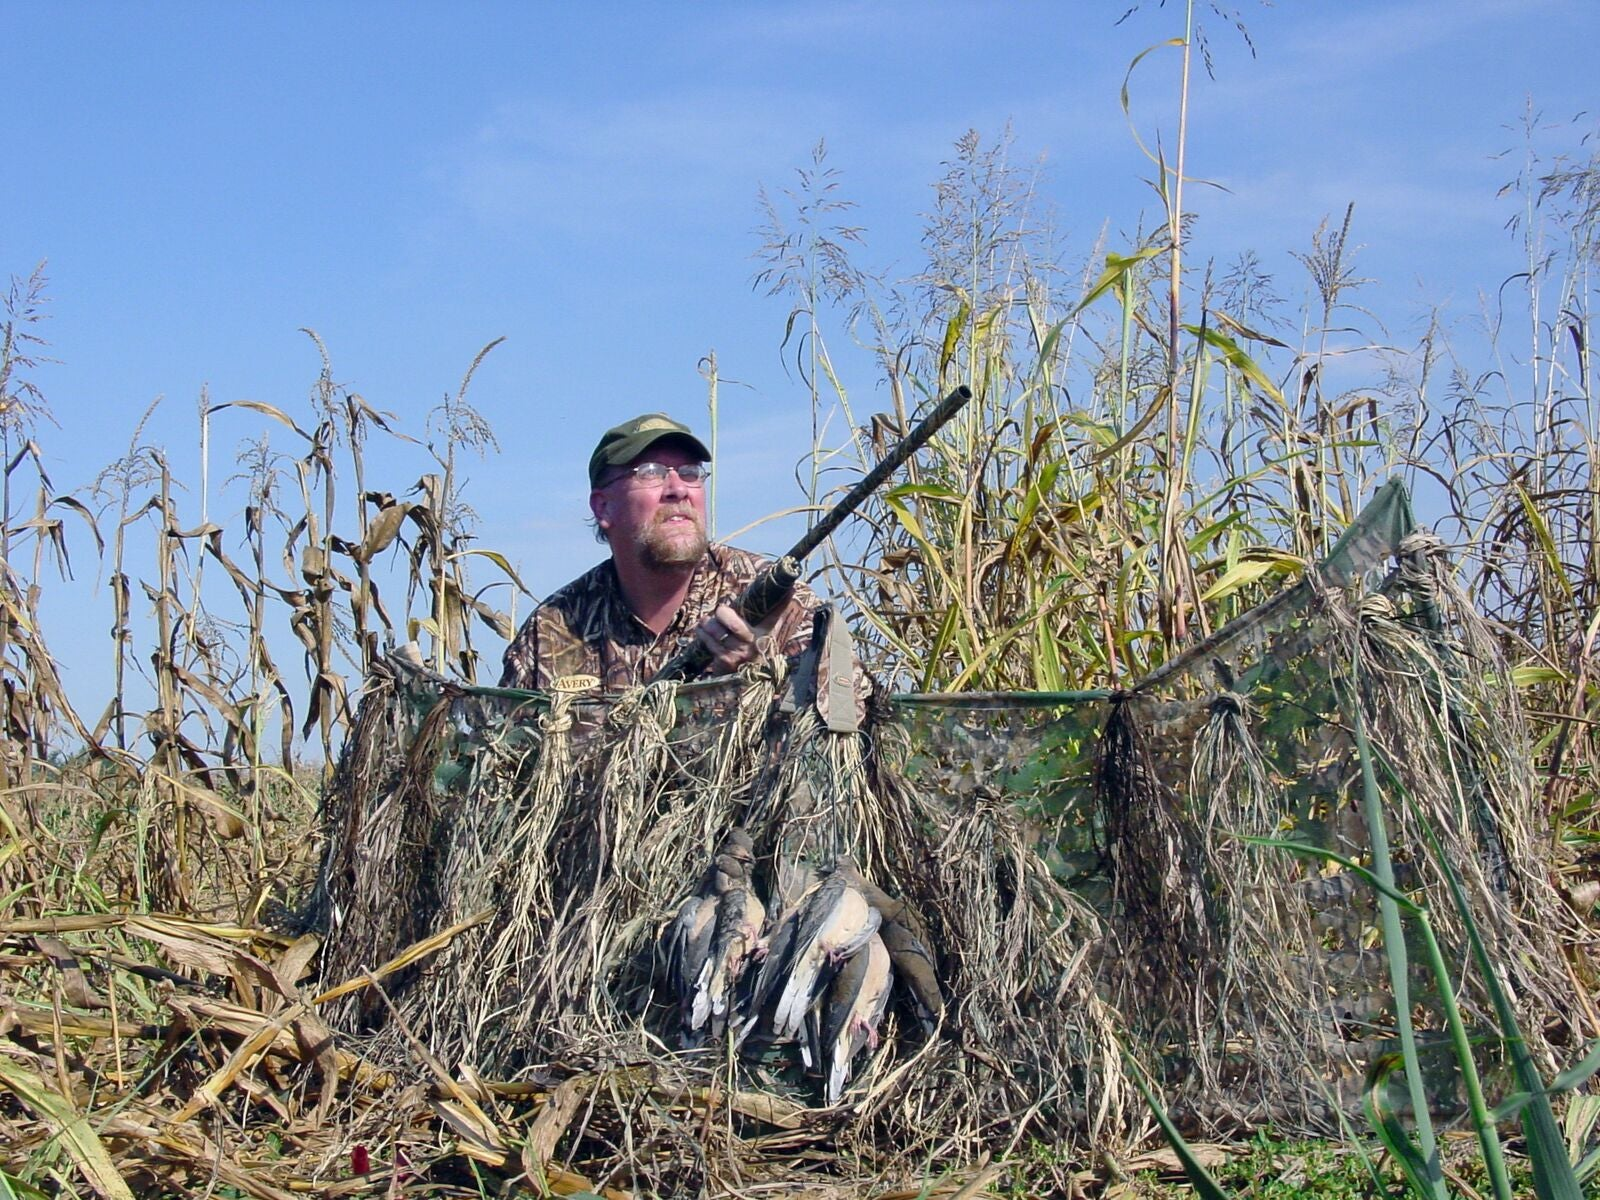 DIY Dove Hunting: 5 Things You Need to Attract More Birds